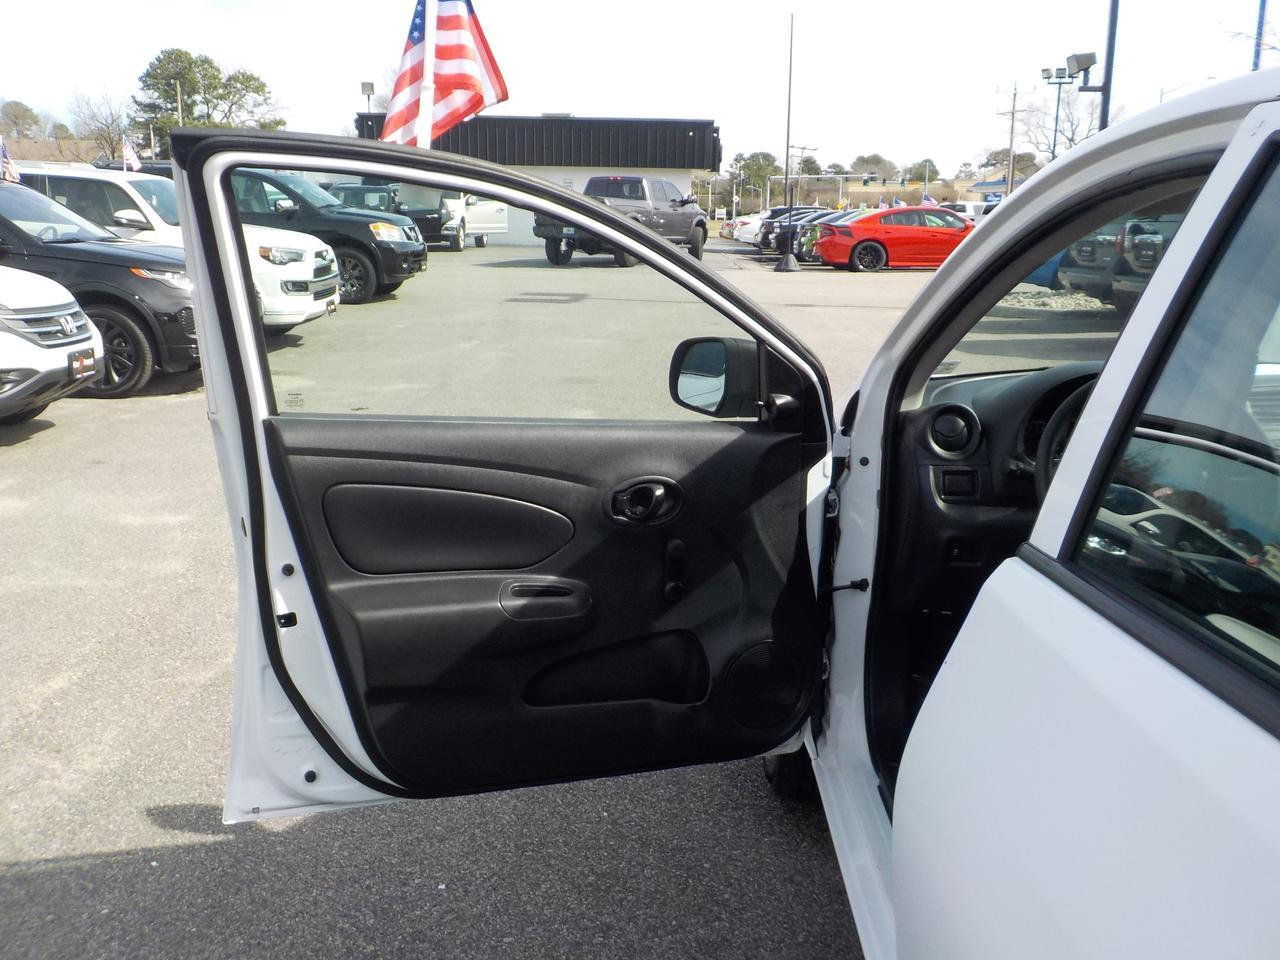 2014 NISSAN VERSA MANUAL 5 SPEED FWD, VERY CLEAN, WELL MAINTAINED, ONLY 80K MILES! Virginia Beach VA